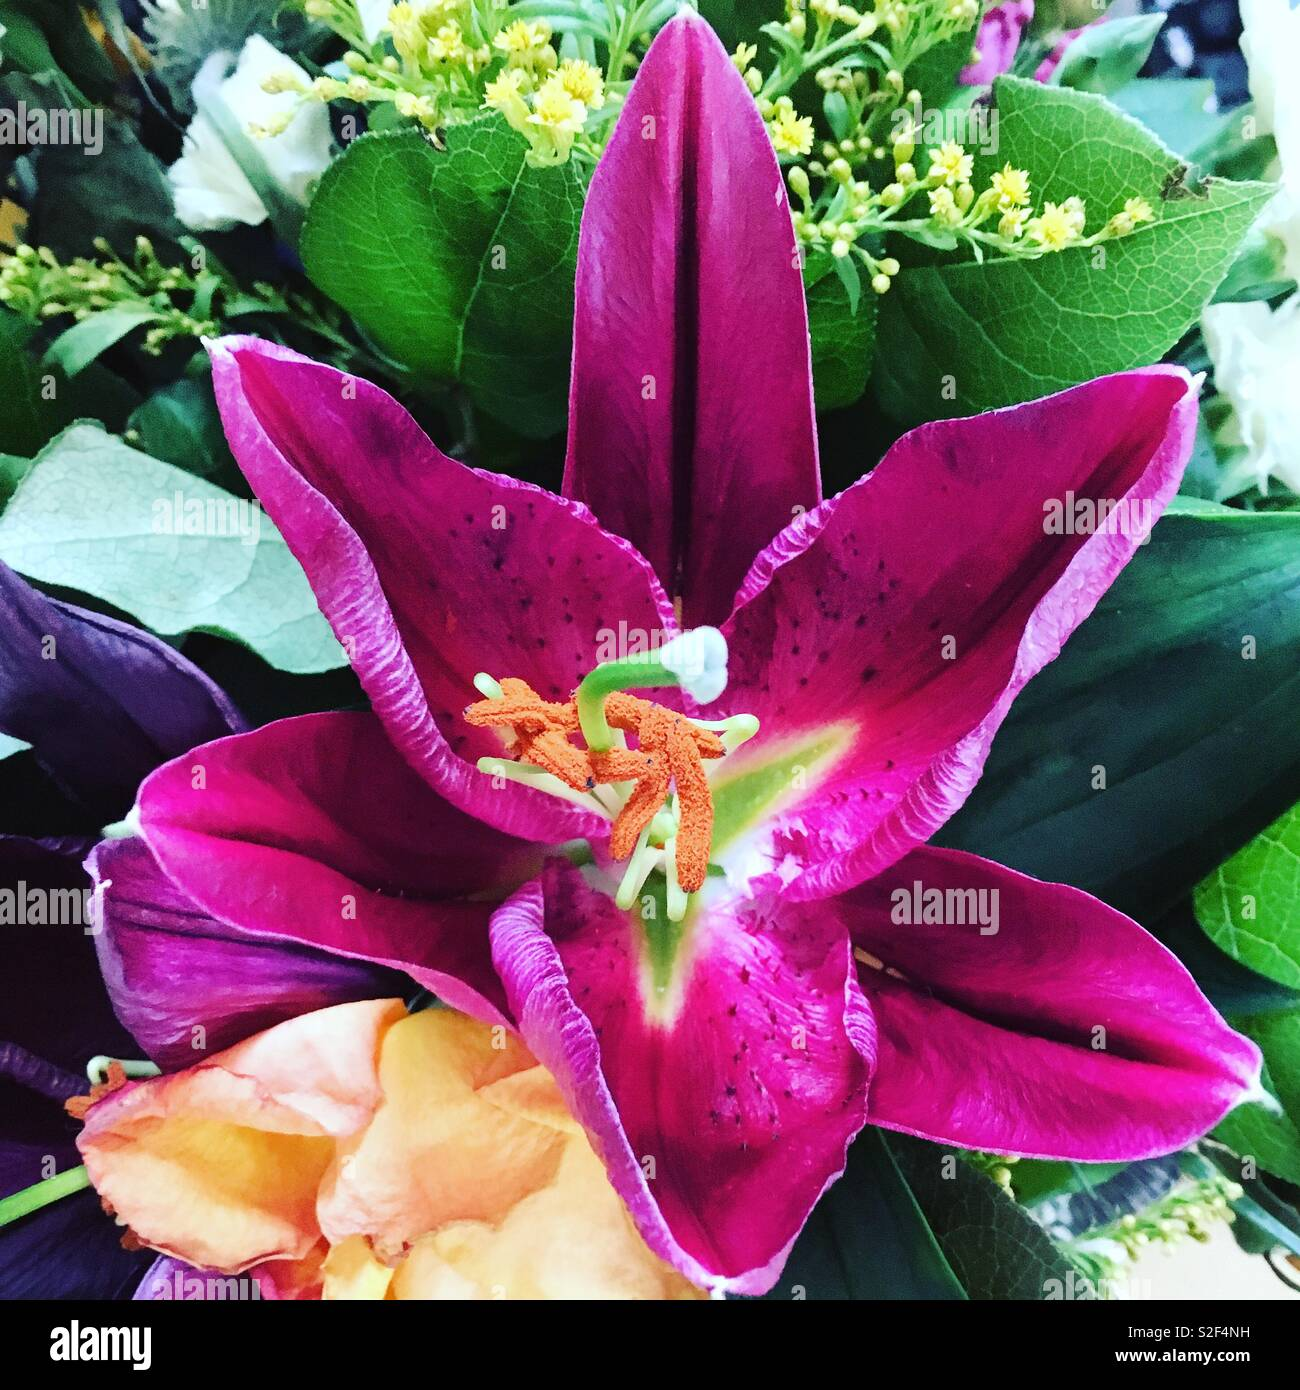 Purple lily in a flower bouquet. - Stock Image